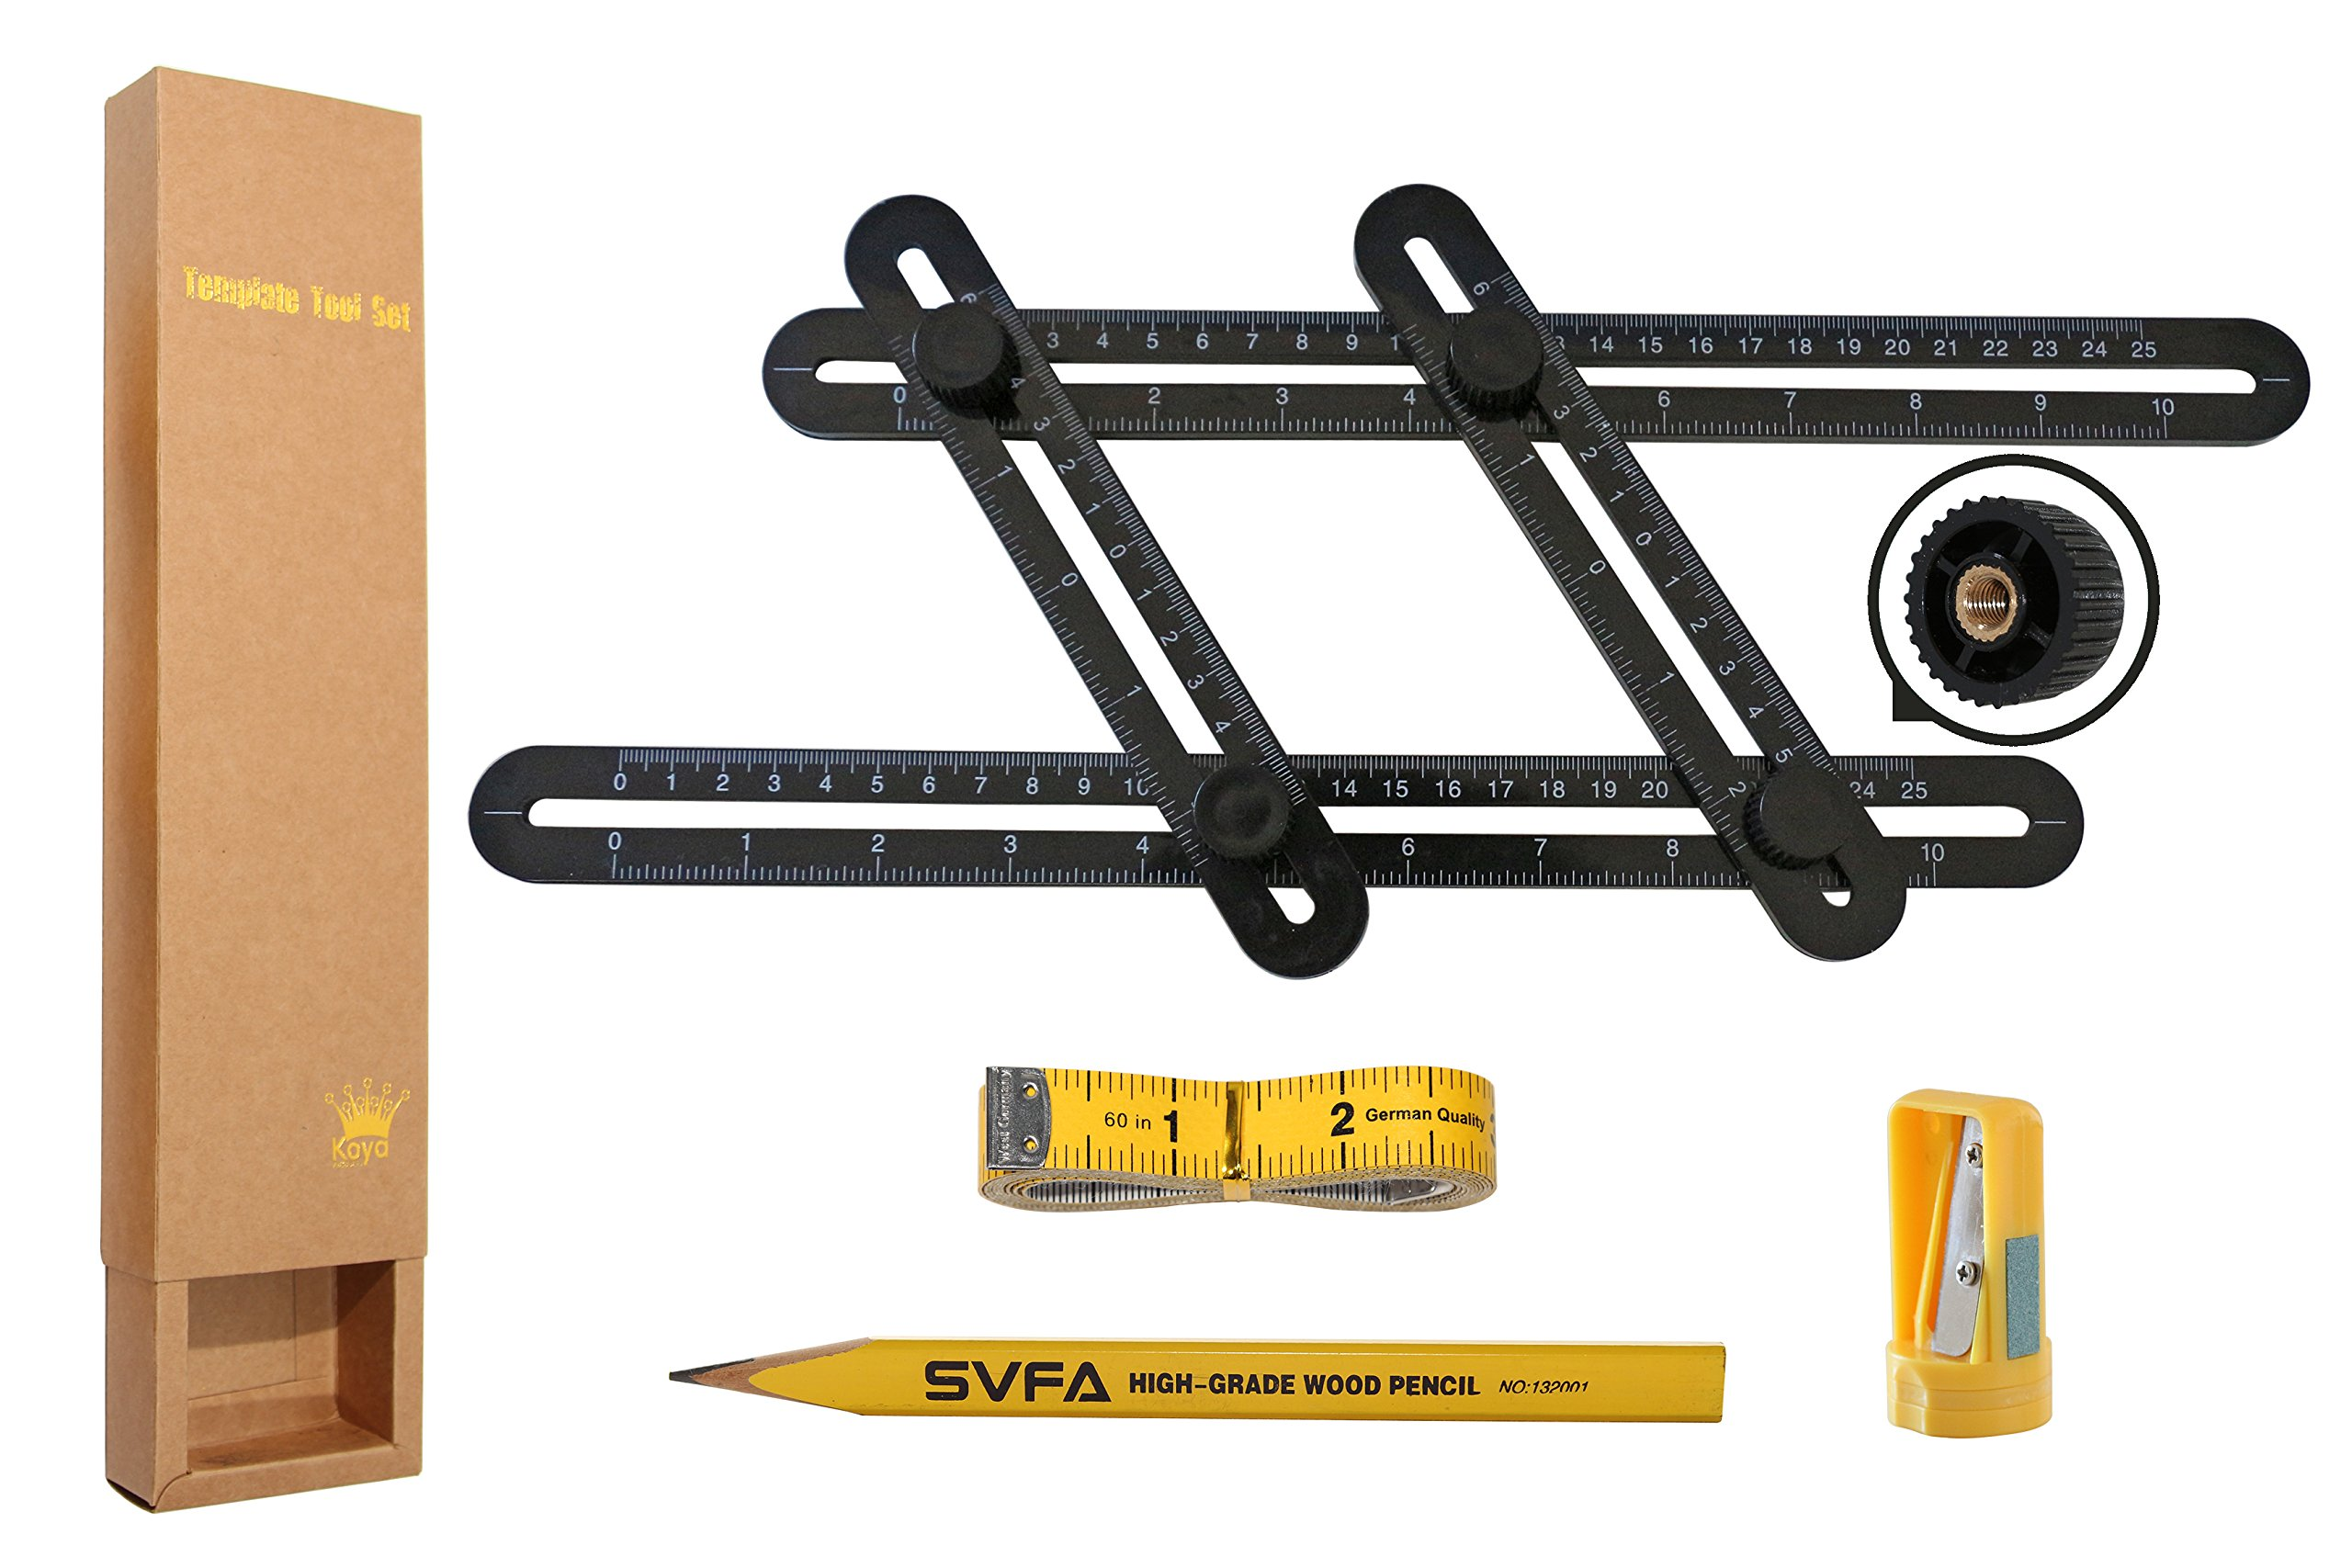 Template Tool kit Any-Angle Multi-Angle Measuring Ruler Set Perfect For Builders, Craftsmen, Handymen, Carpenters, Roofers, Tilers, DIY-ers & GREAT GIFT